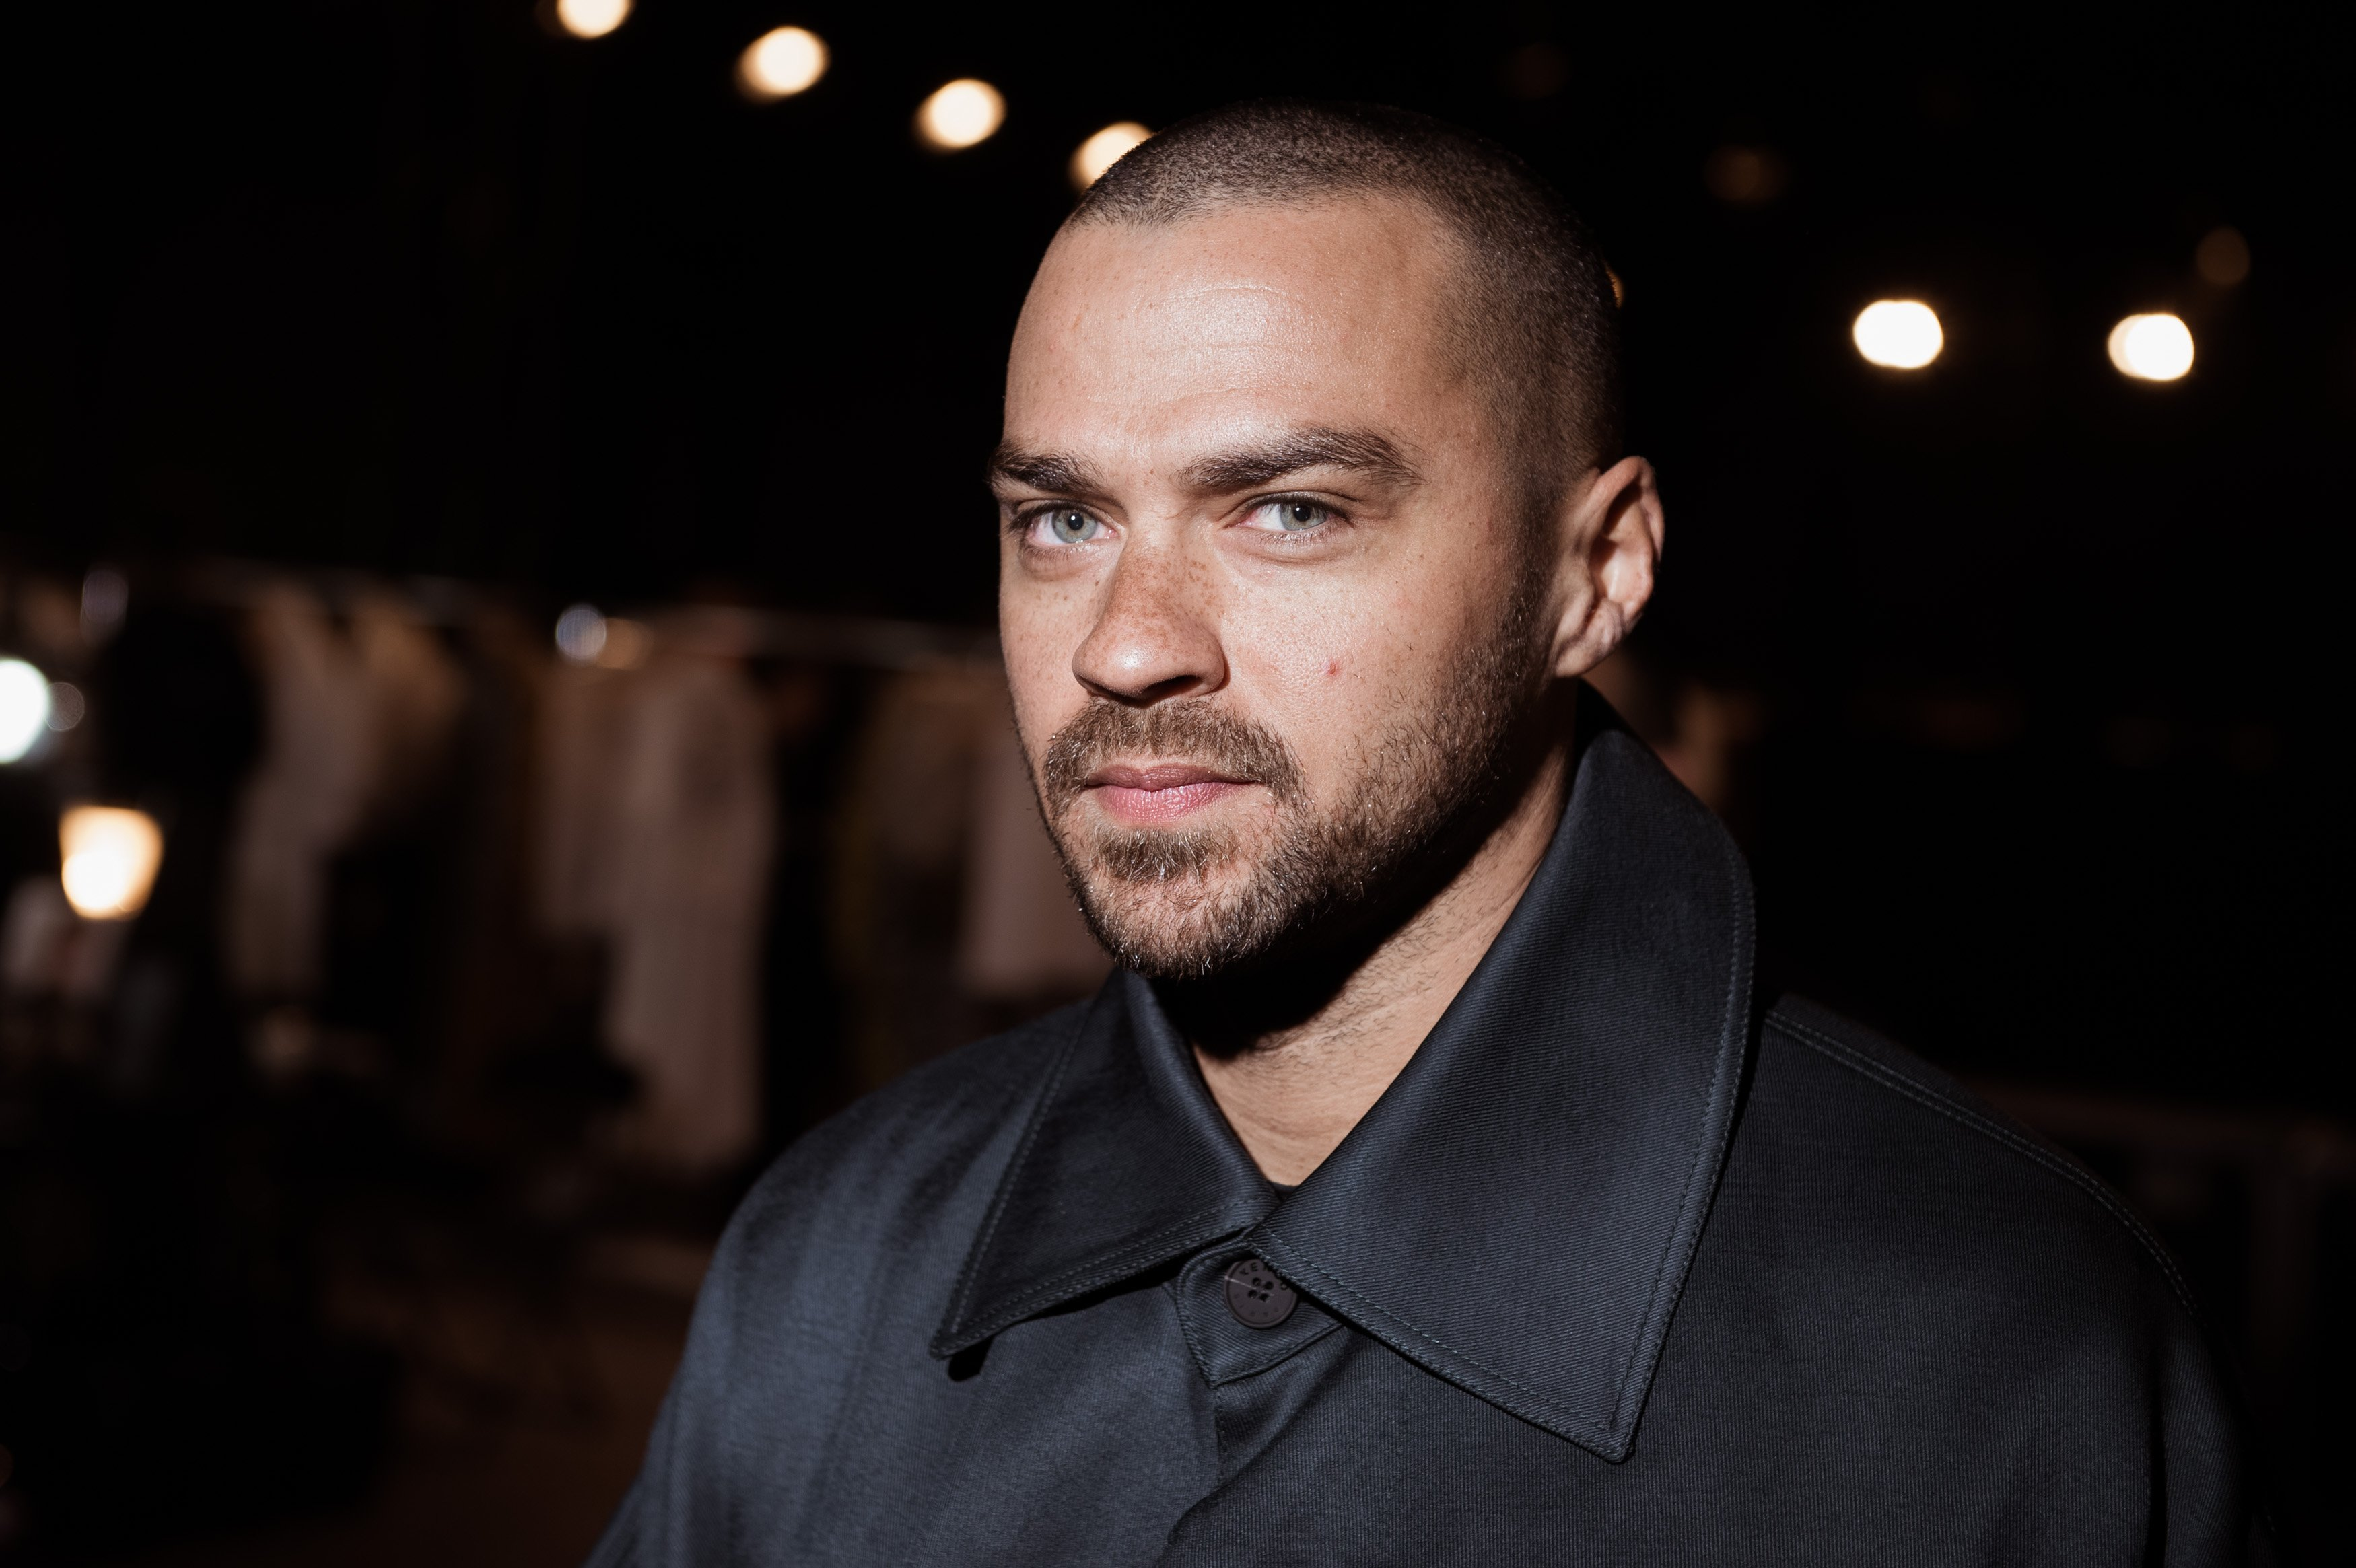 Jesse Williams at a Paris Fashion Week Show in France on Jan. 22, 2017 | Photo: Getty Images